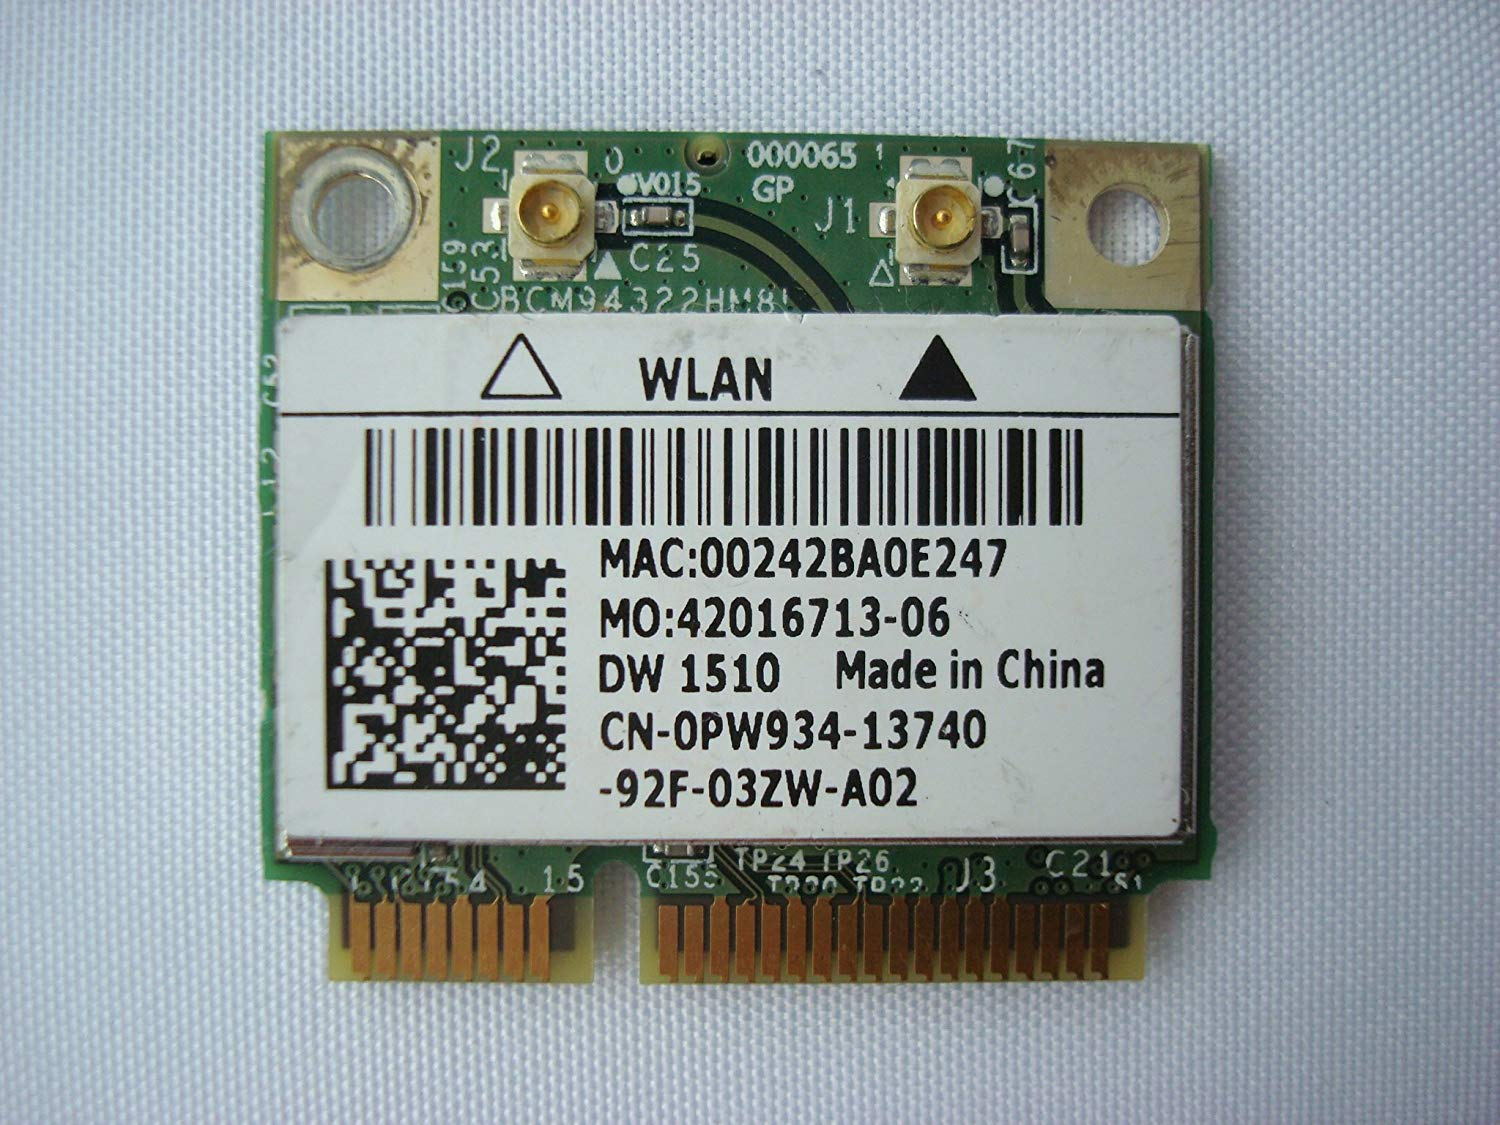 DELL WLAN 1510 DRIVERS FOR WINDOWS 10